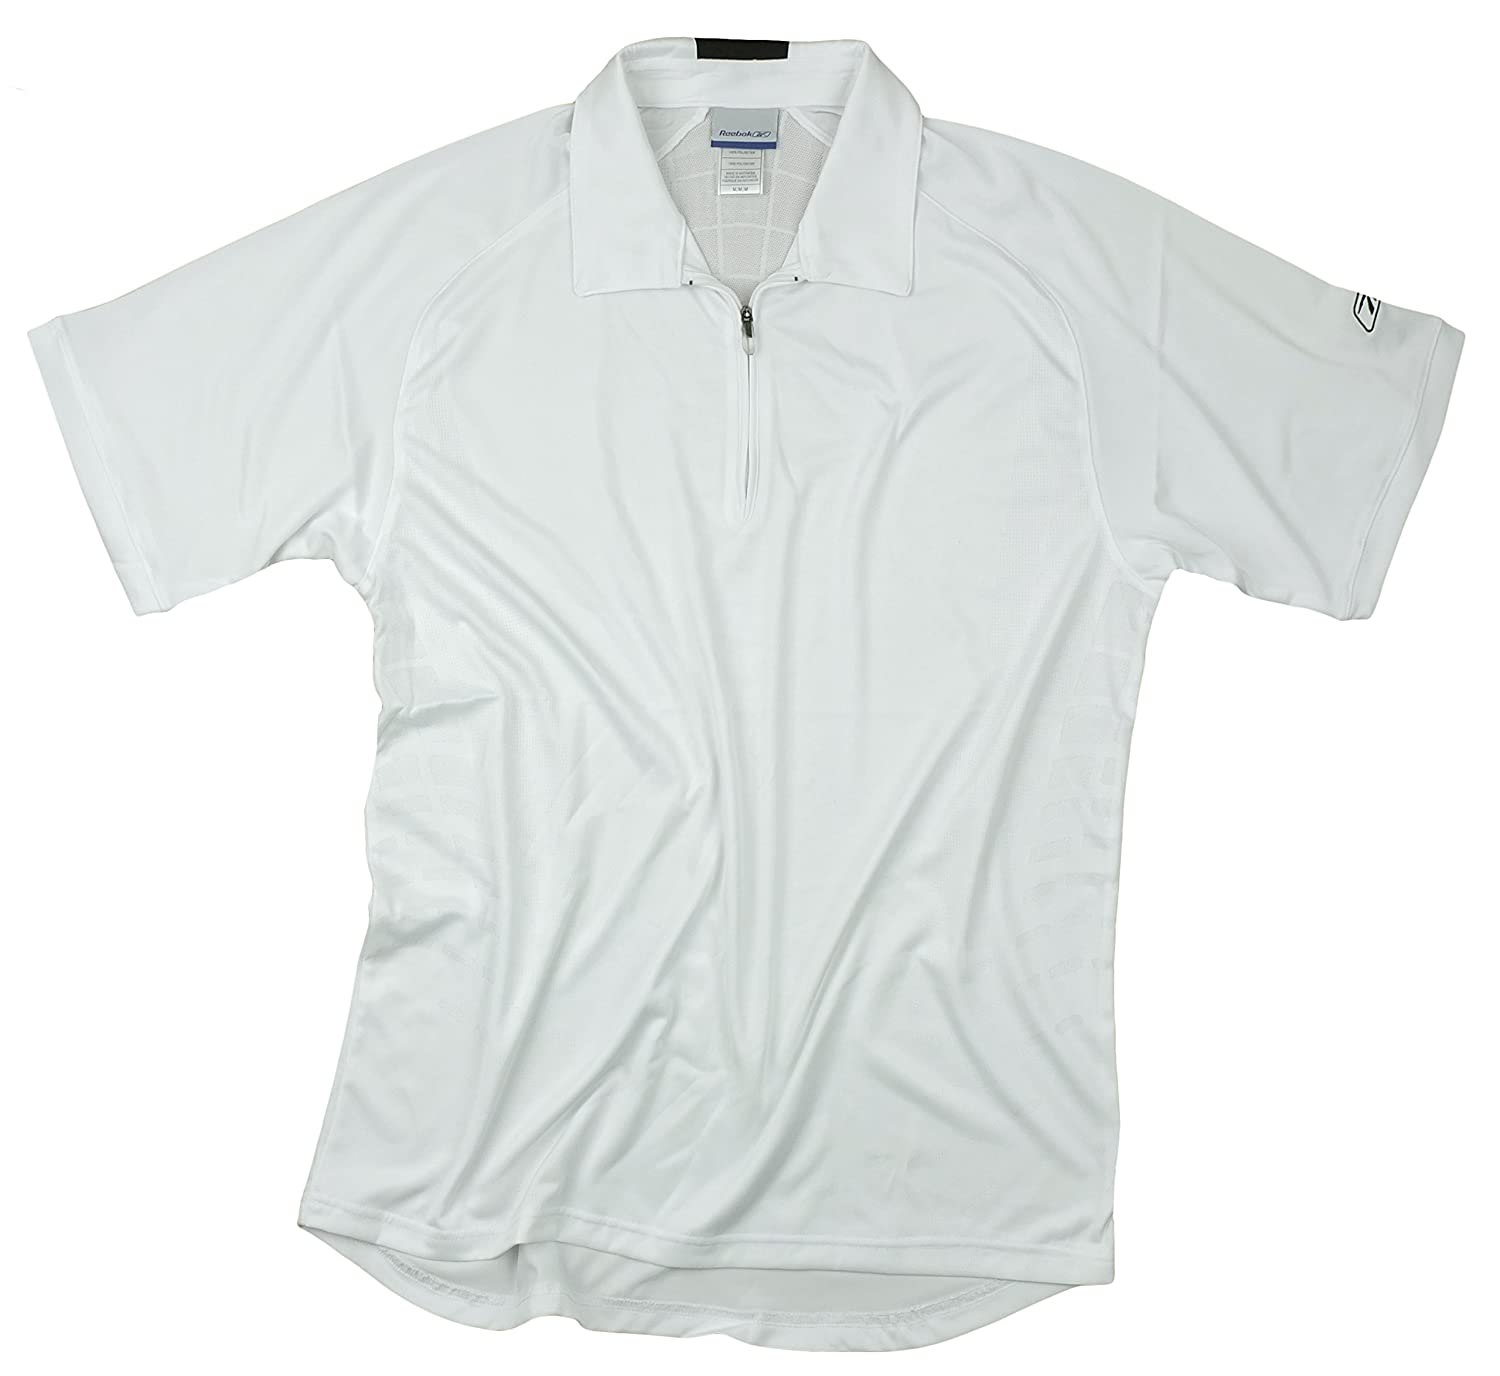 Reebok - Camiseta de Hombre Athletic Polo, Blanco: Amazon.es ...